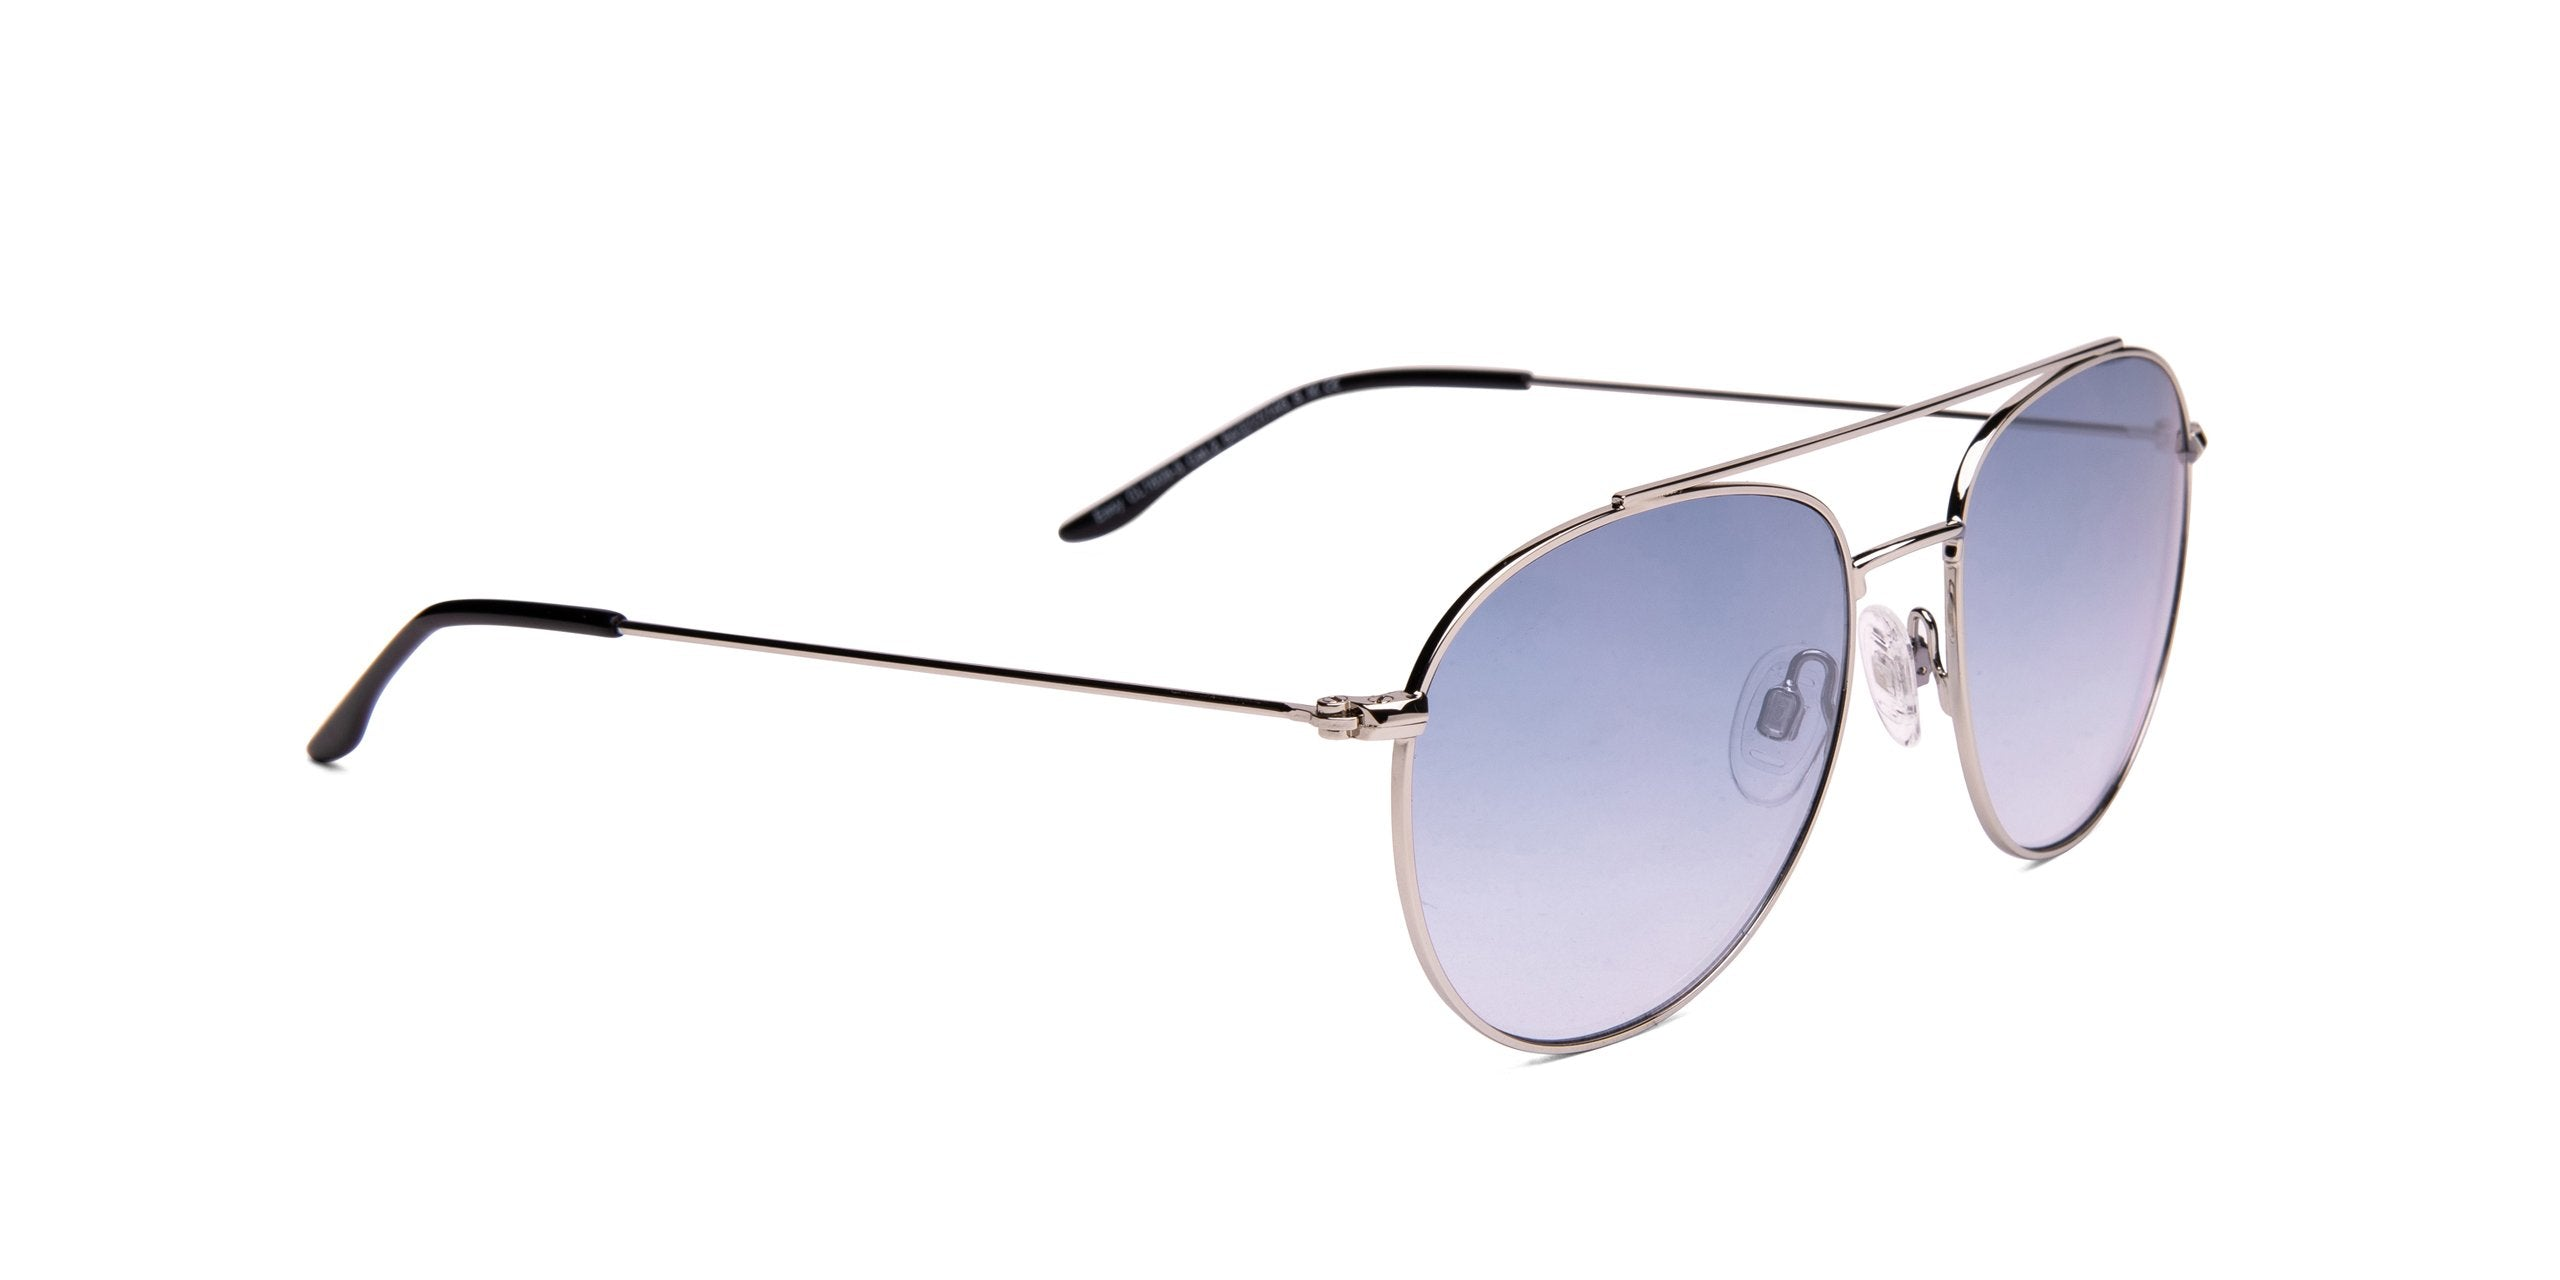 FRAME Silver LENS Gradient Brown White Mirror